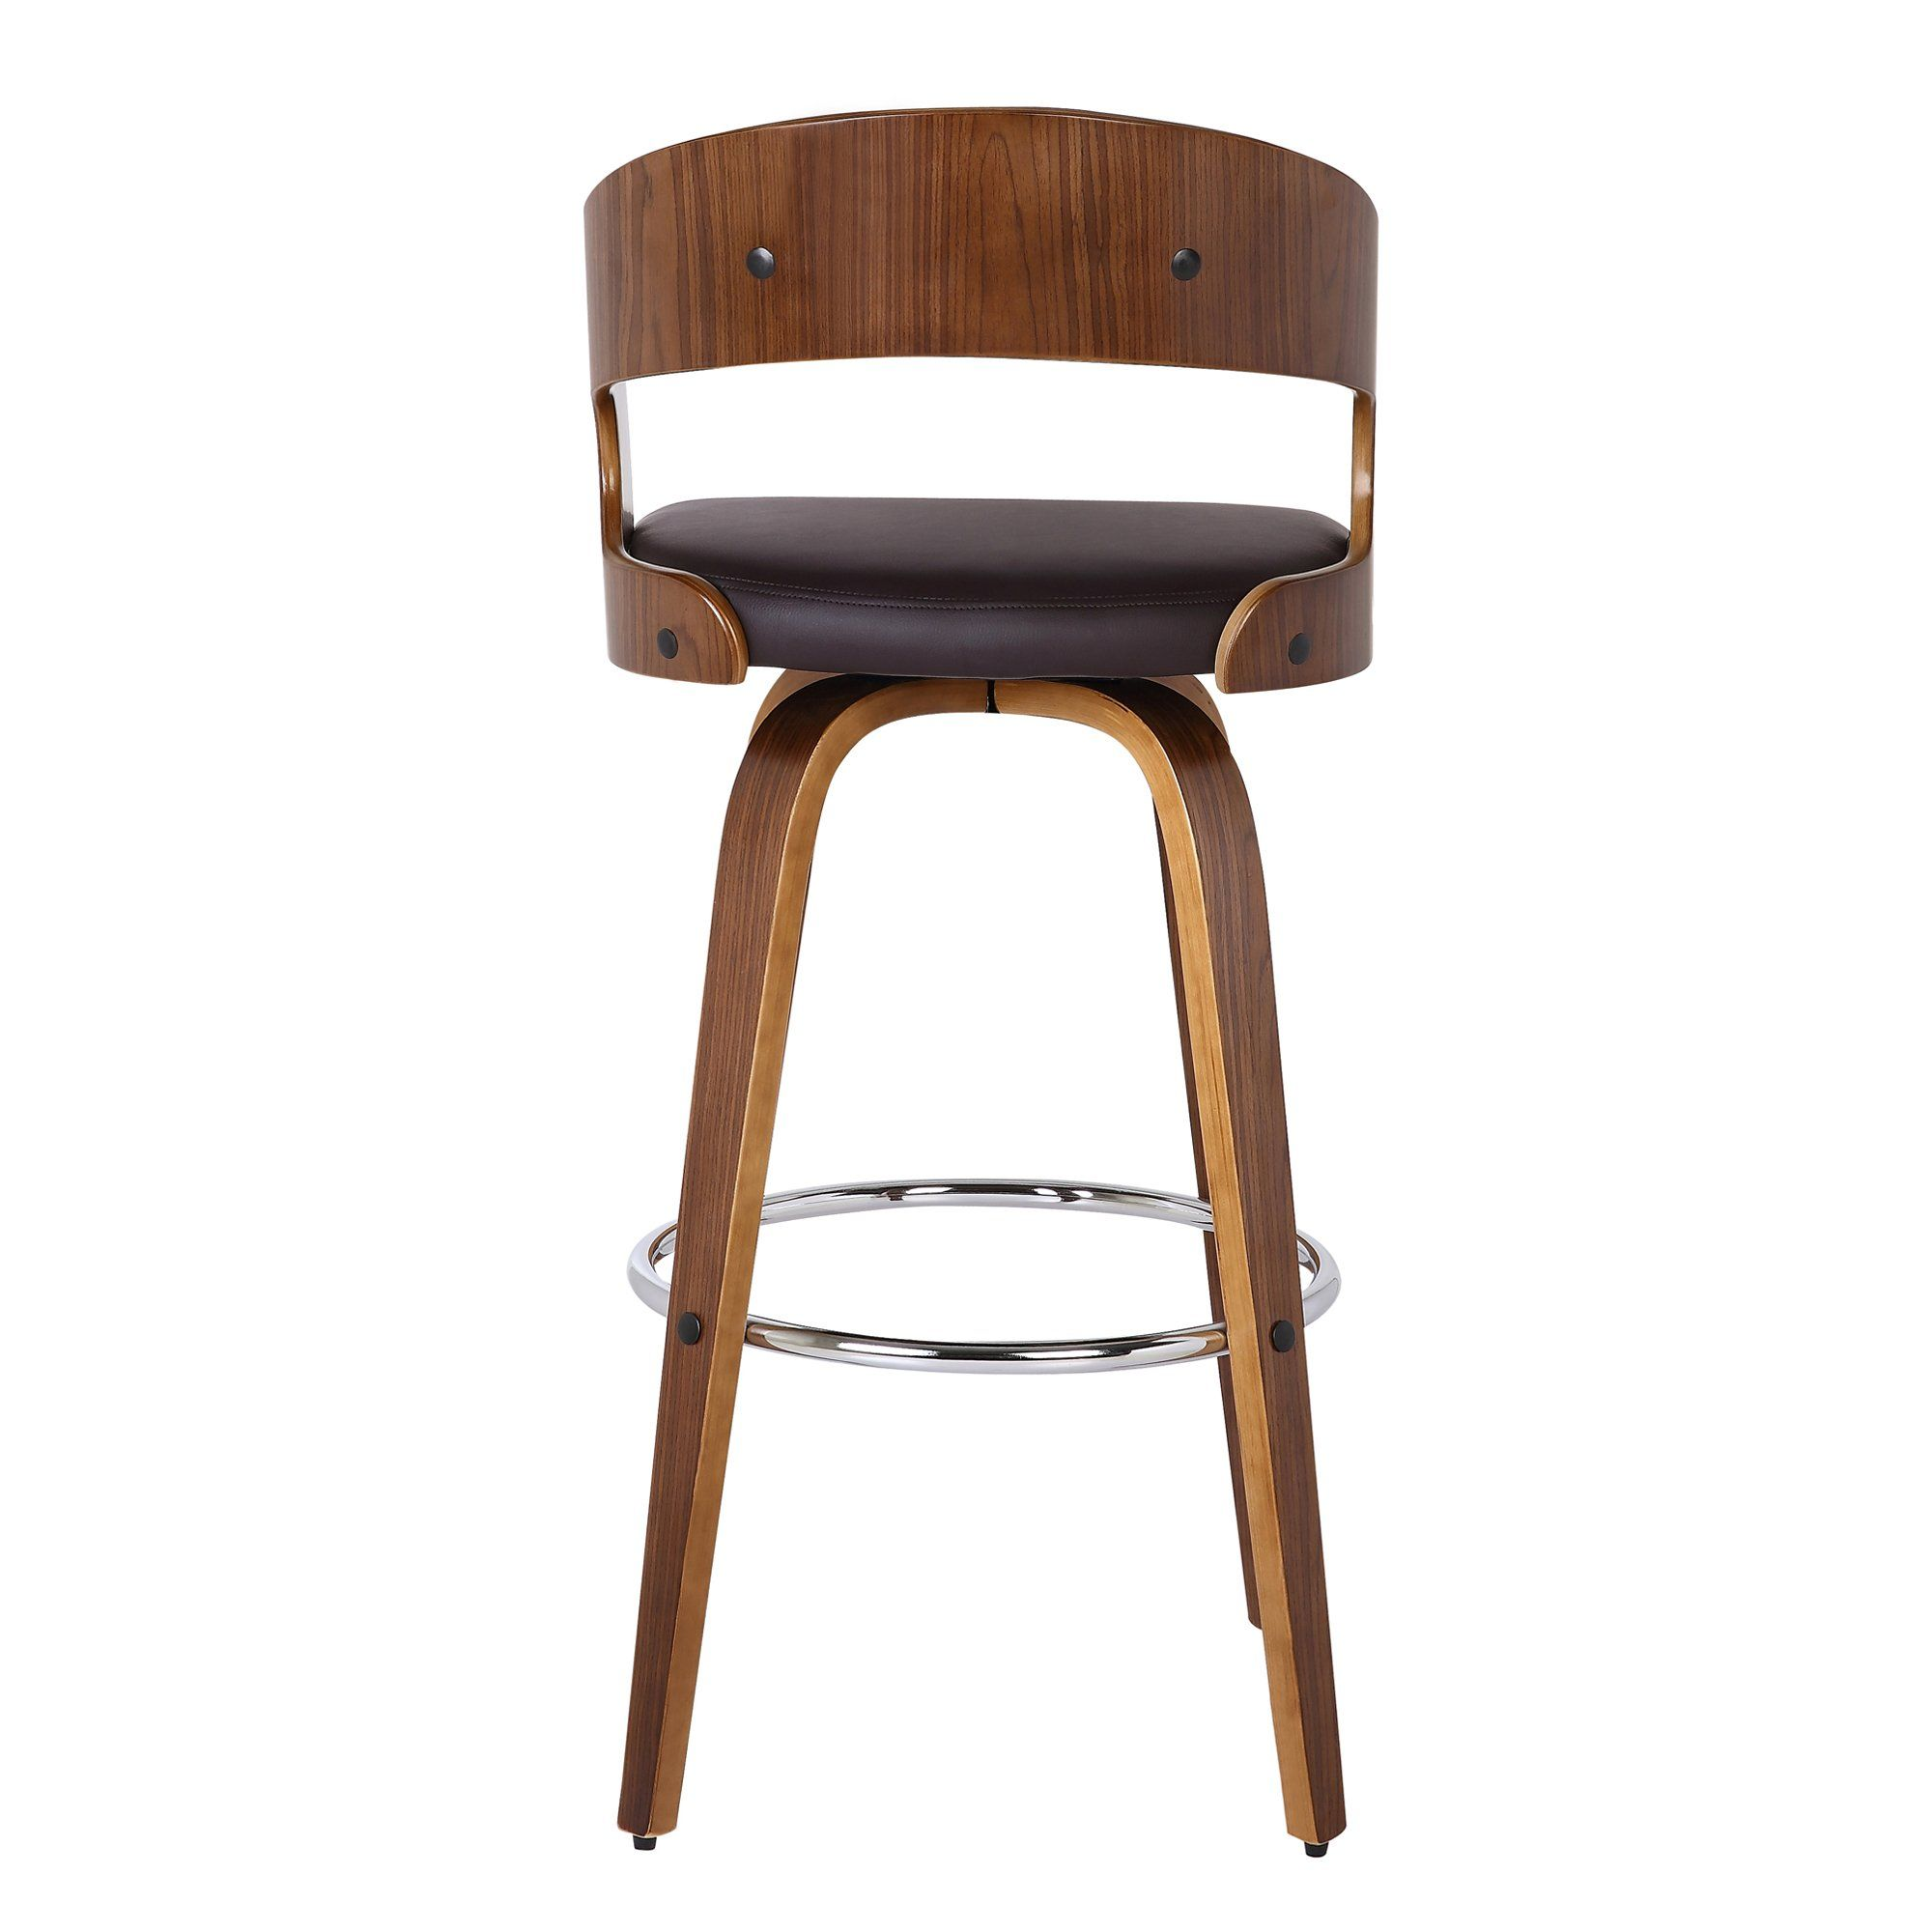 Walnut Brown 26 Inch Counter Height Stool Shelly In 2021 Bar Stools Brown Bar Stools Swivel Bar Stools